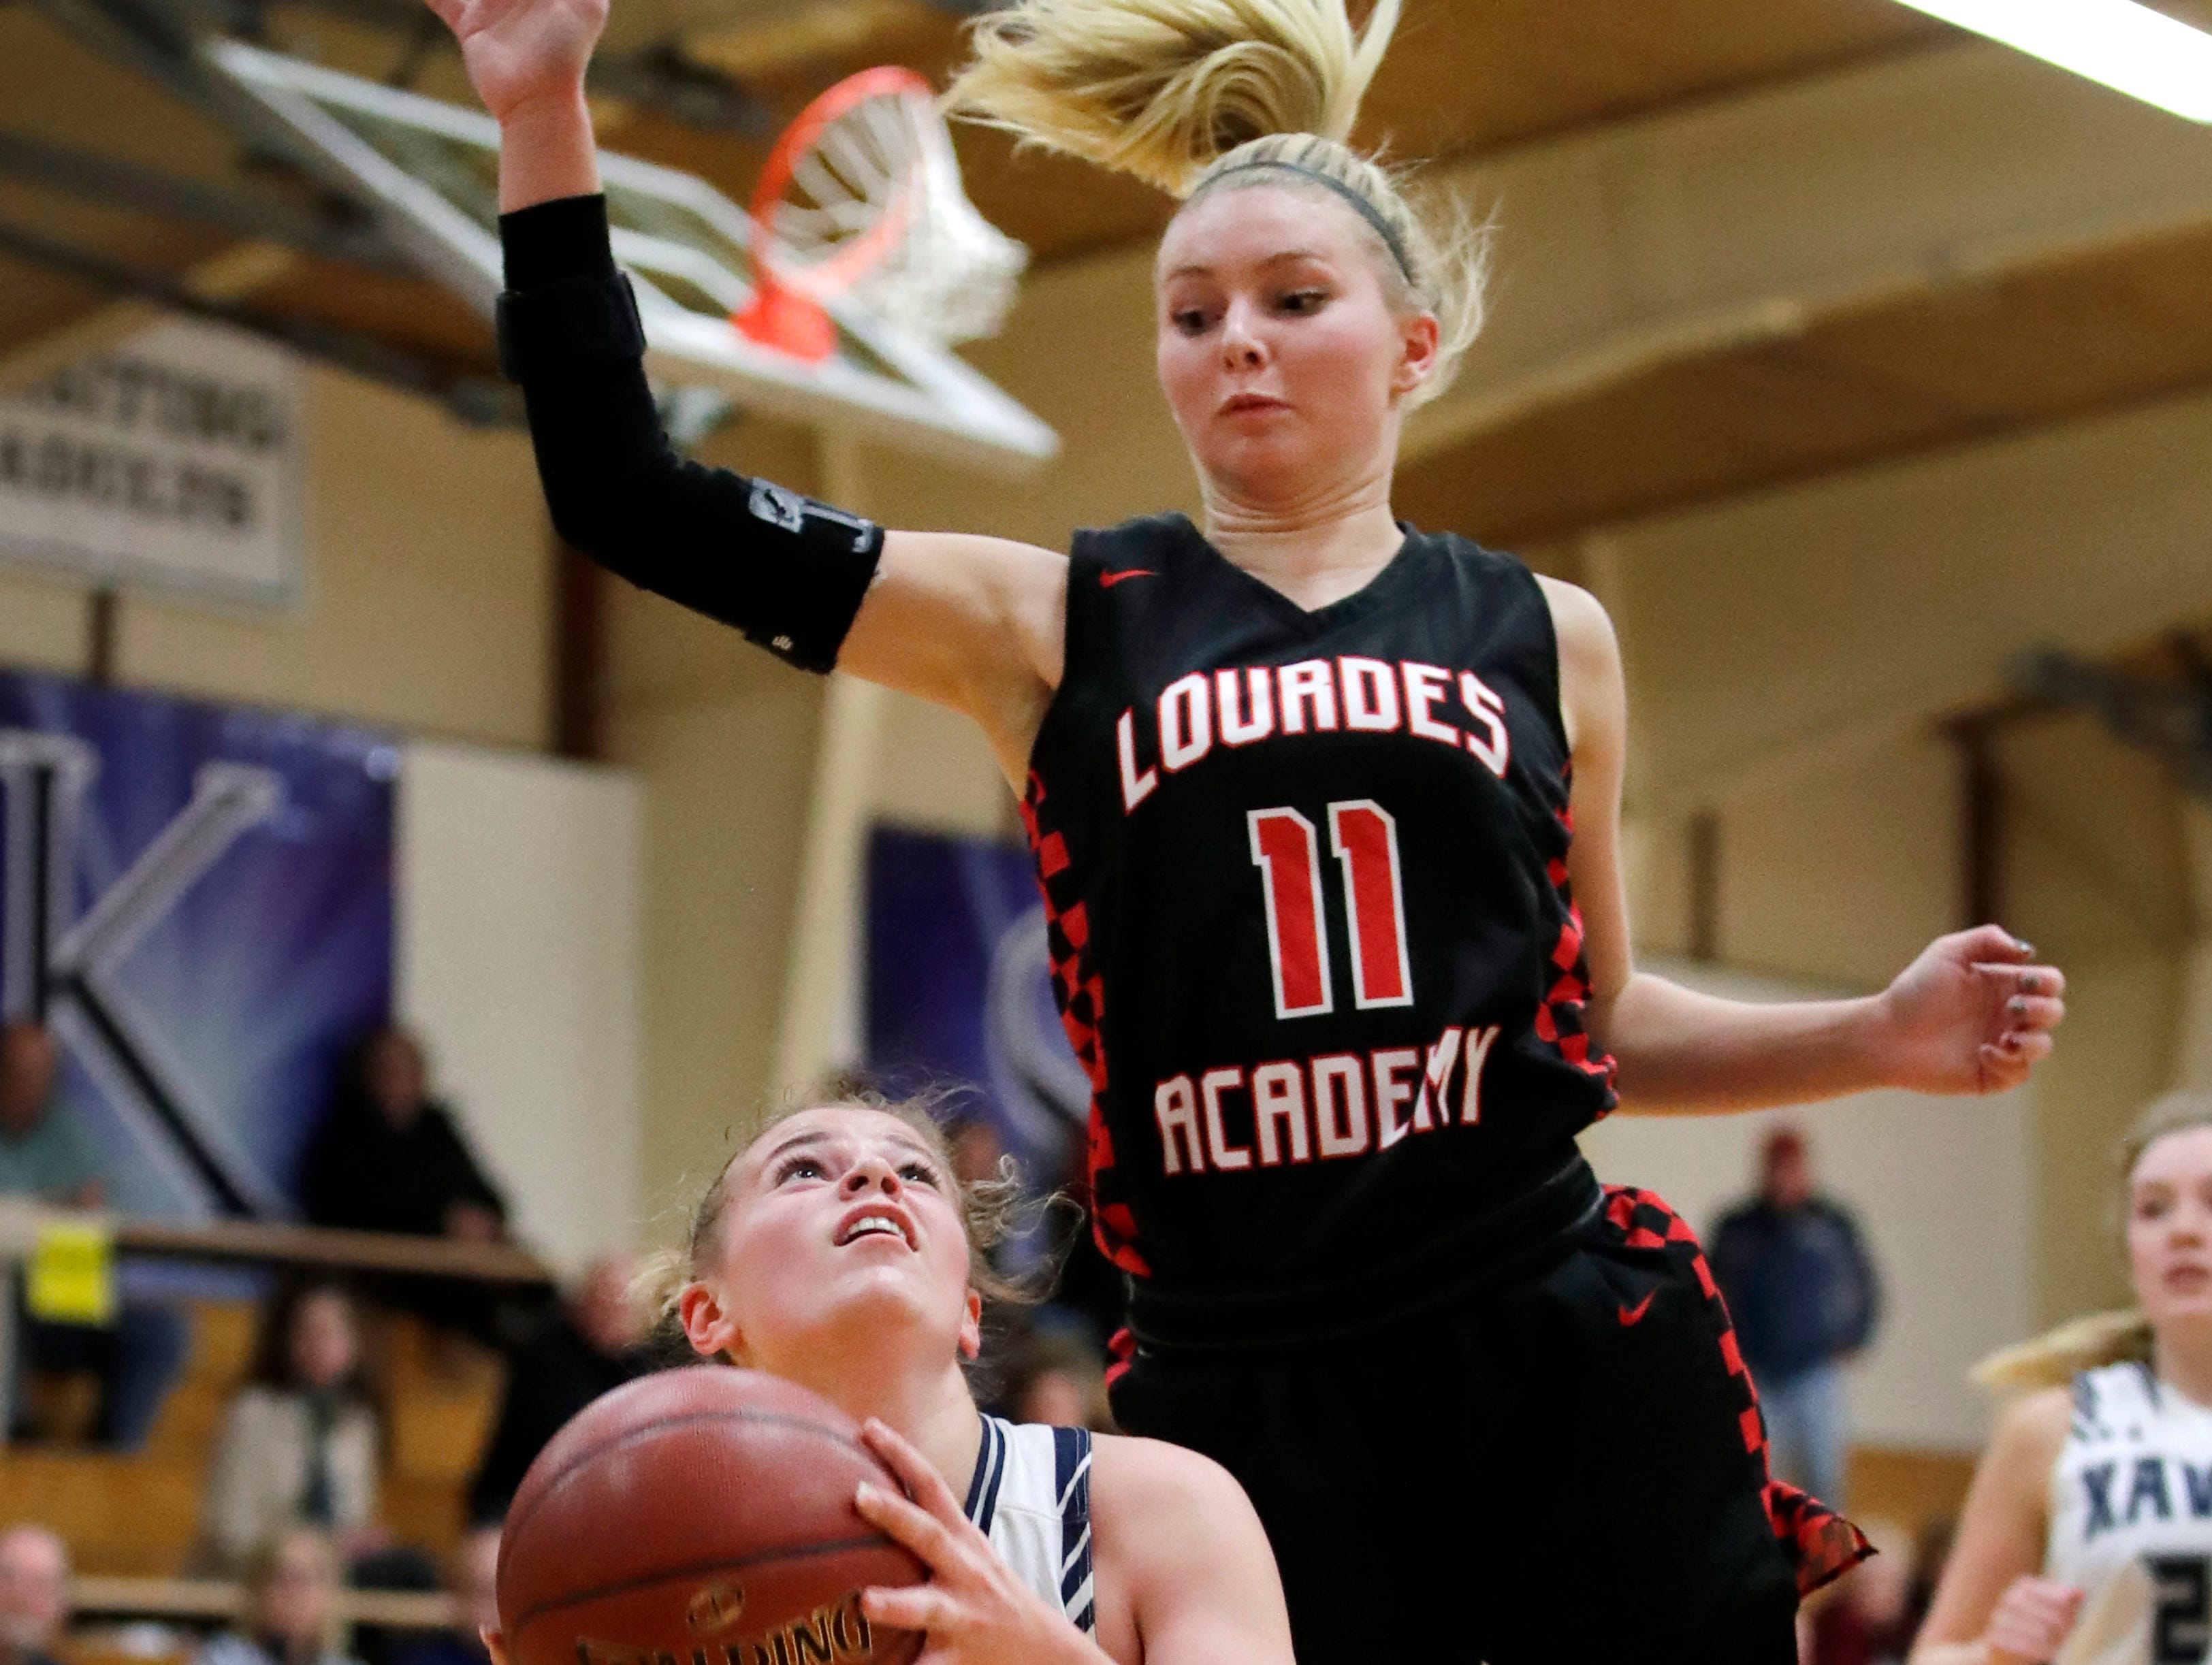 Xavier High School's Becca Feldkamp looks for a shot as Lourdes Academy's Alexis Rolph covers her Wednesday, Nov. 14, 2018, in Appleton, Wis. Xavier High School defeated Lourdes Academy 54-42.